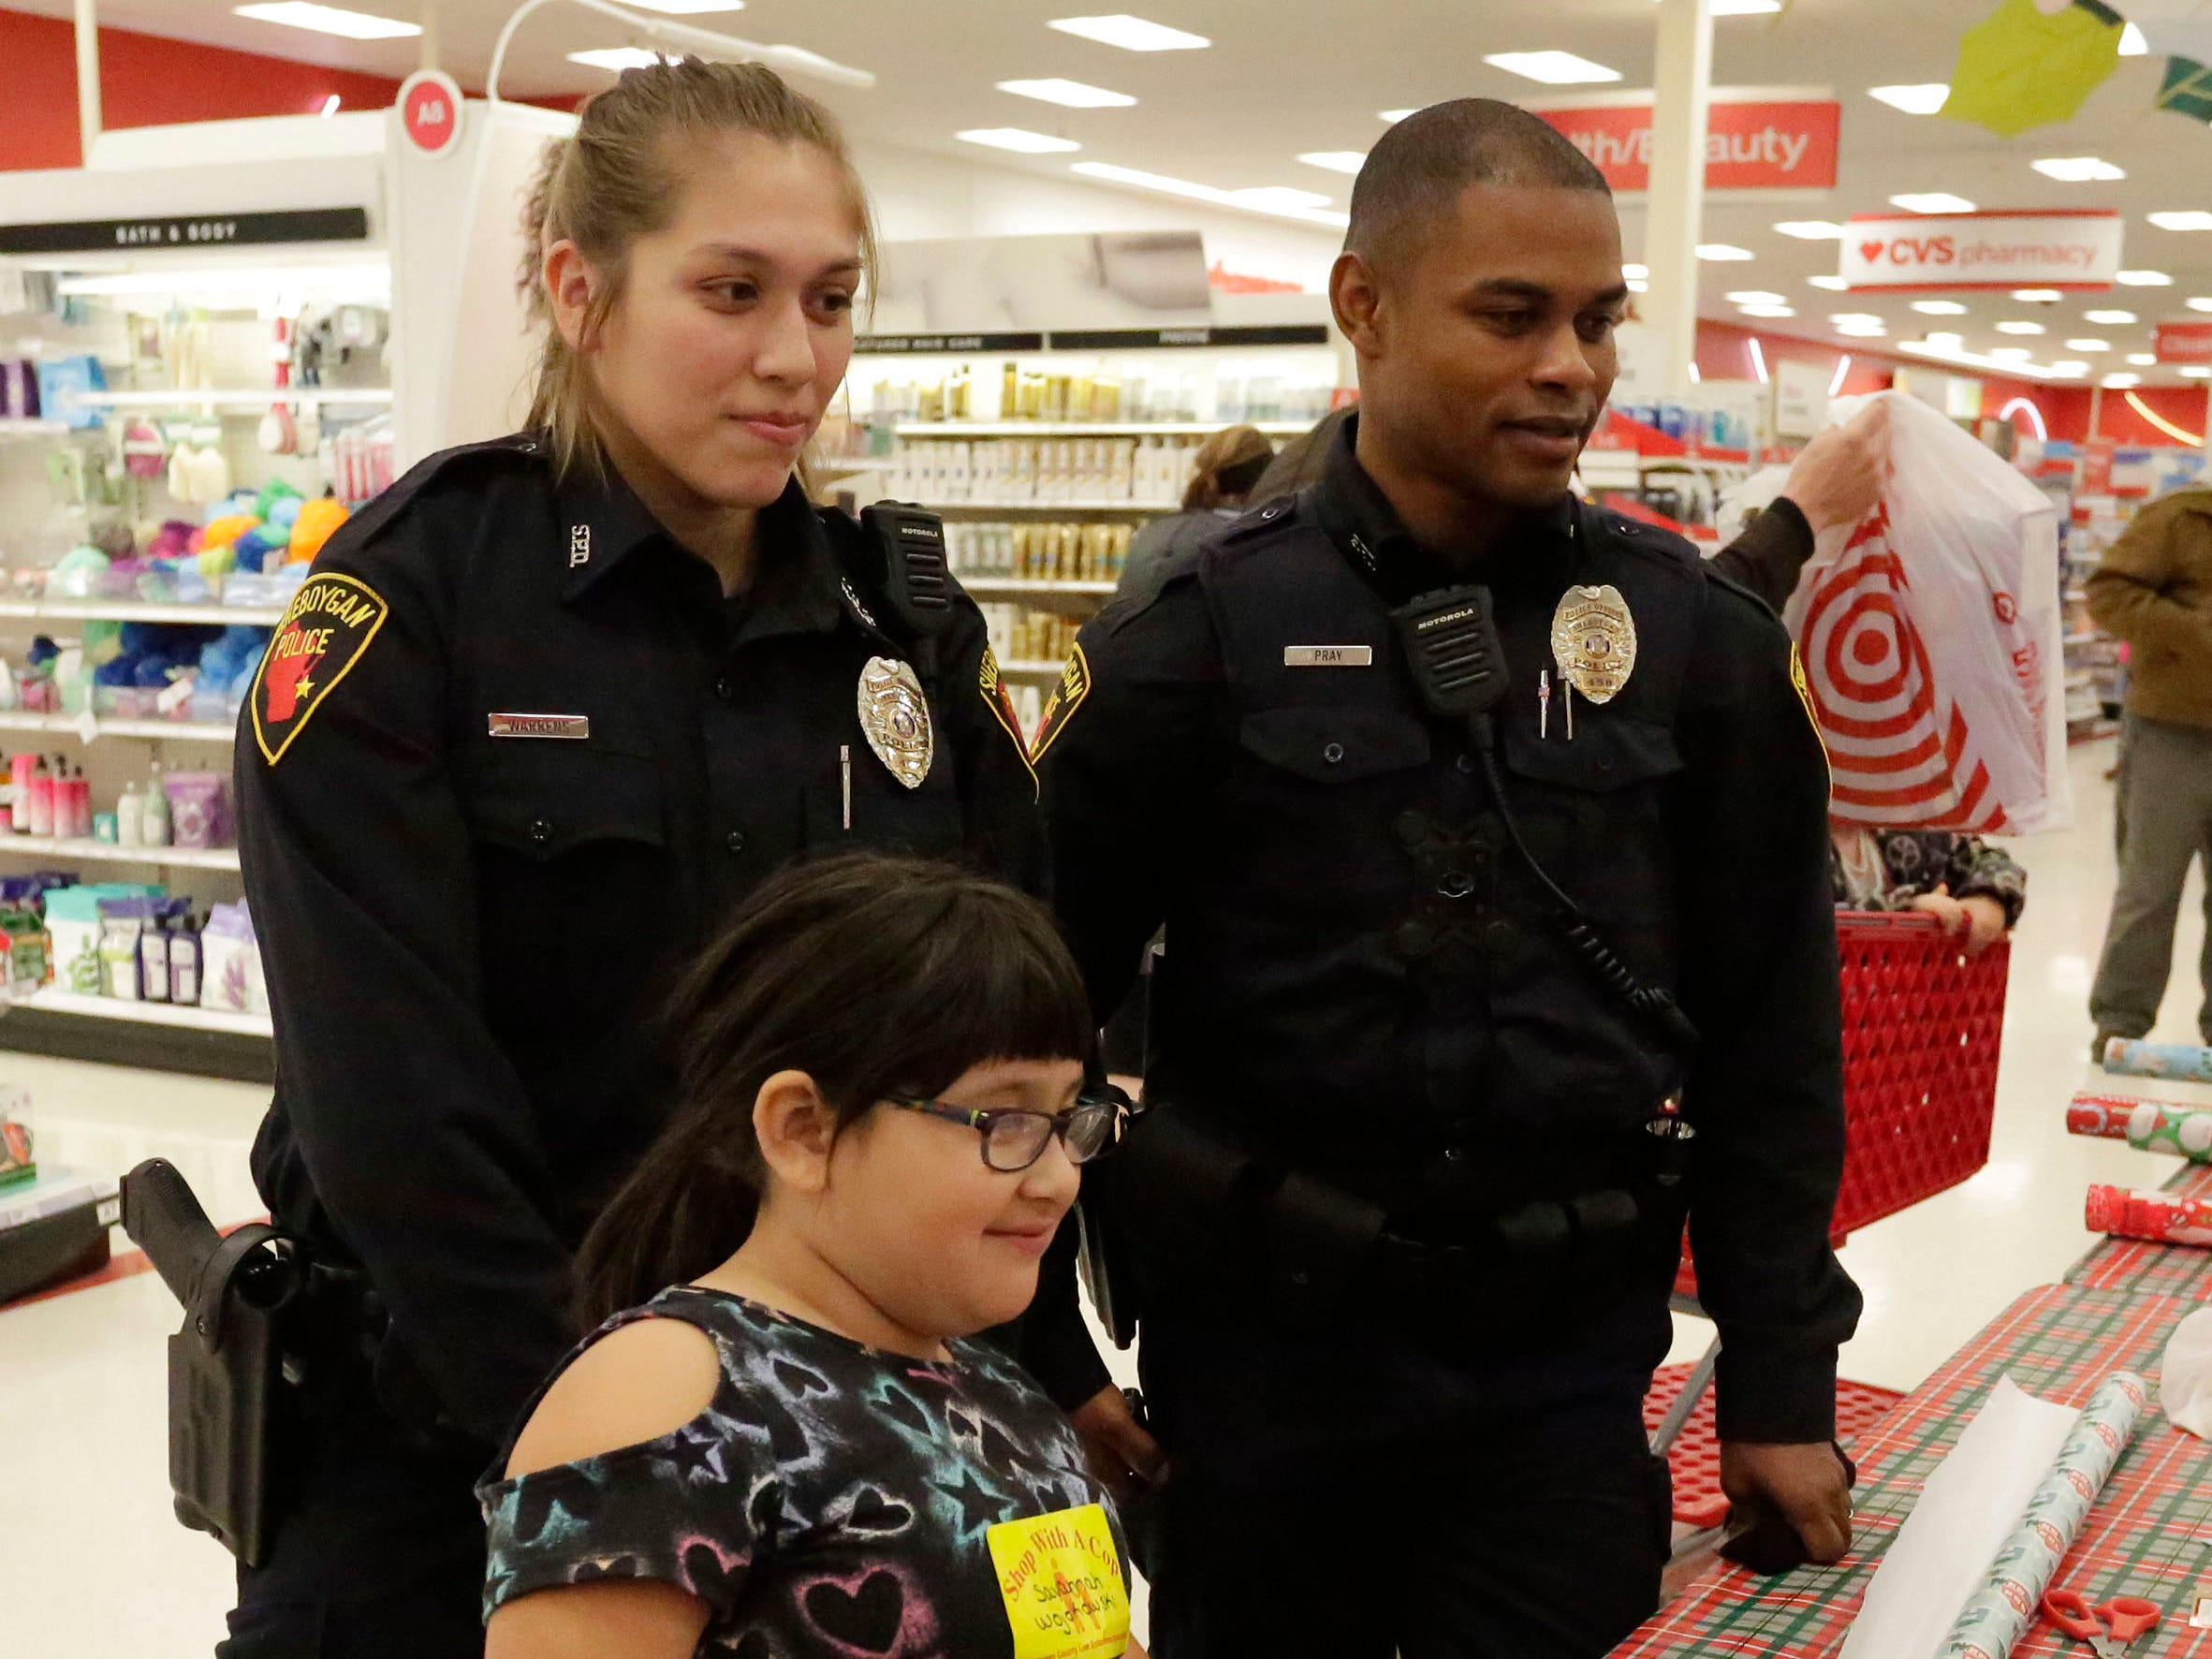 Sheboygan police officers Lina Warrens, left, and Brian Pray wait with Savannah Wojokowski, 9, of Sheboygan, Wis., while she gets a package wrapped during Shop with a Cop at Target, Tuesday, December 4, 2018, in Kohler, Wis. The program, in its 21st year, raises funds to give children a chance to buy holiday gifts that they otherwise might not receive.